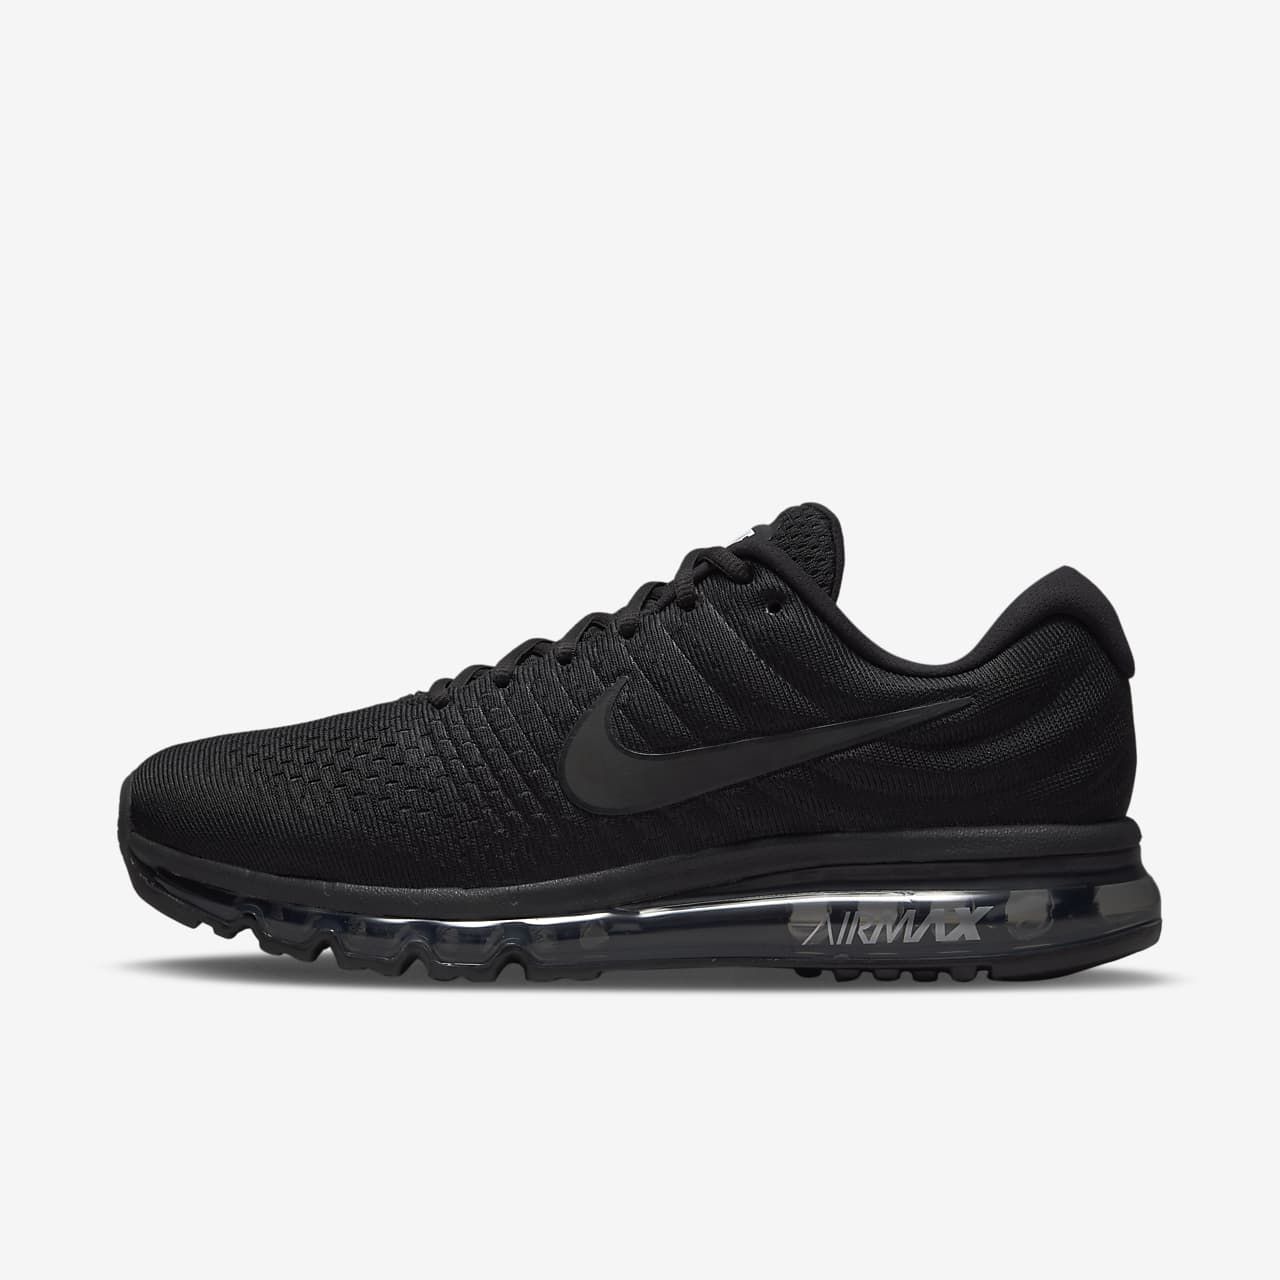 nike air max 2017 men 39 s running shoe. Black Bedroom Furniture Sets. Home Design Ideas